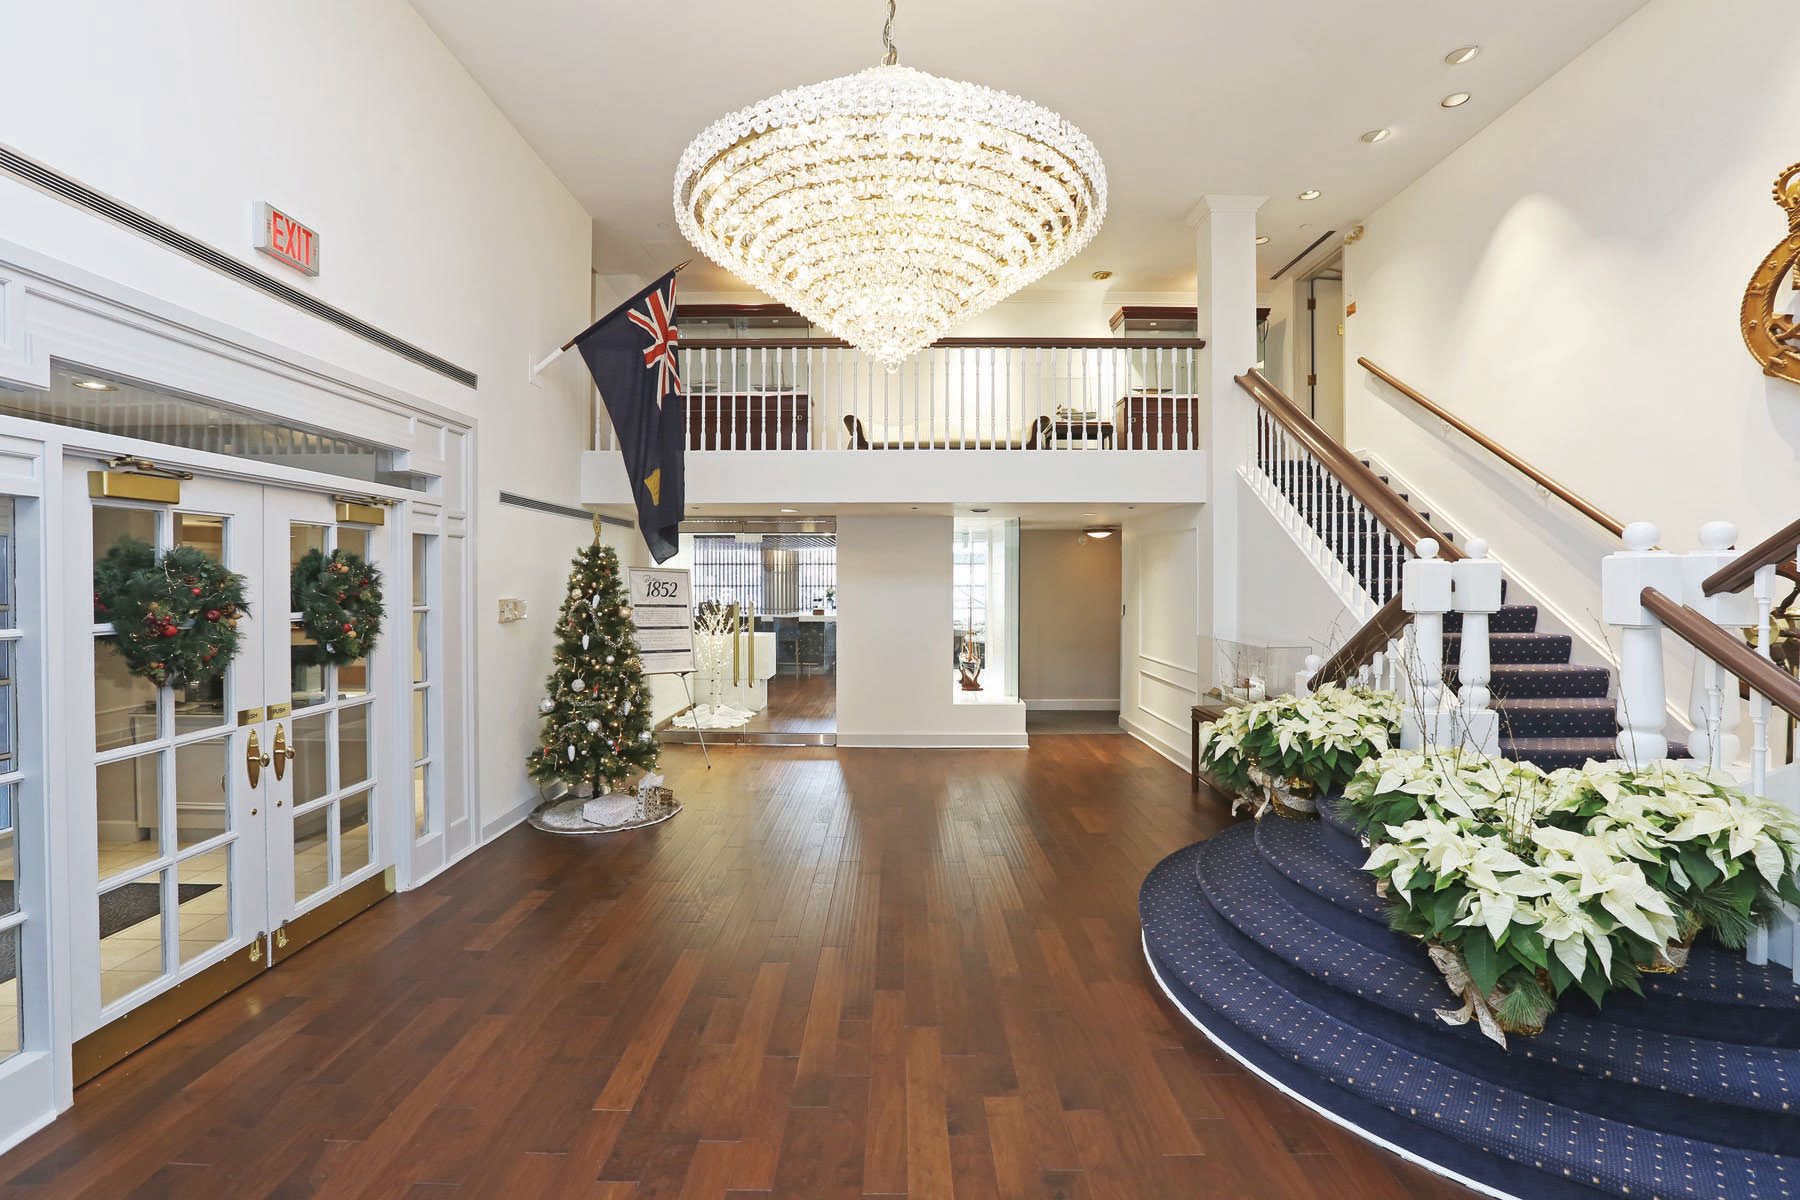 Foyer with large crystal chandelier, French doors on left and blue carpeted wood staircase on right leading to open second storey